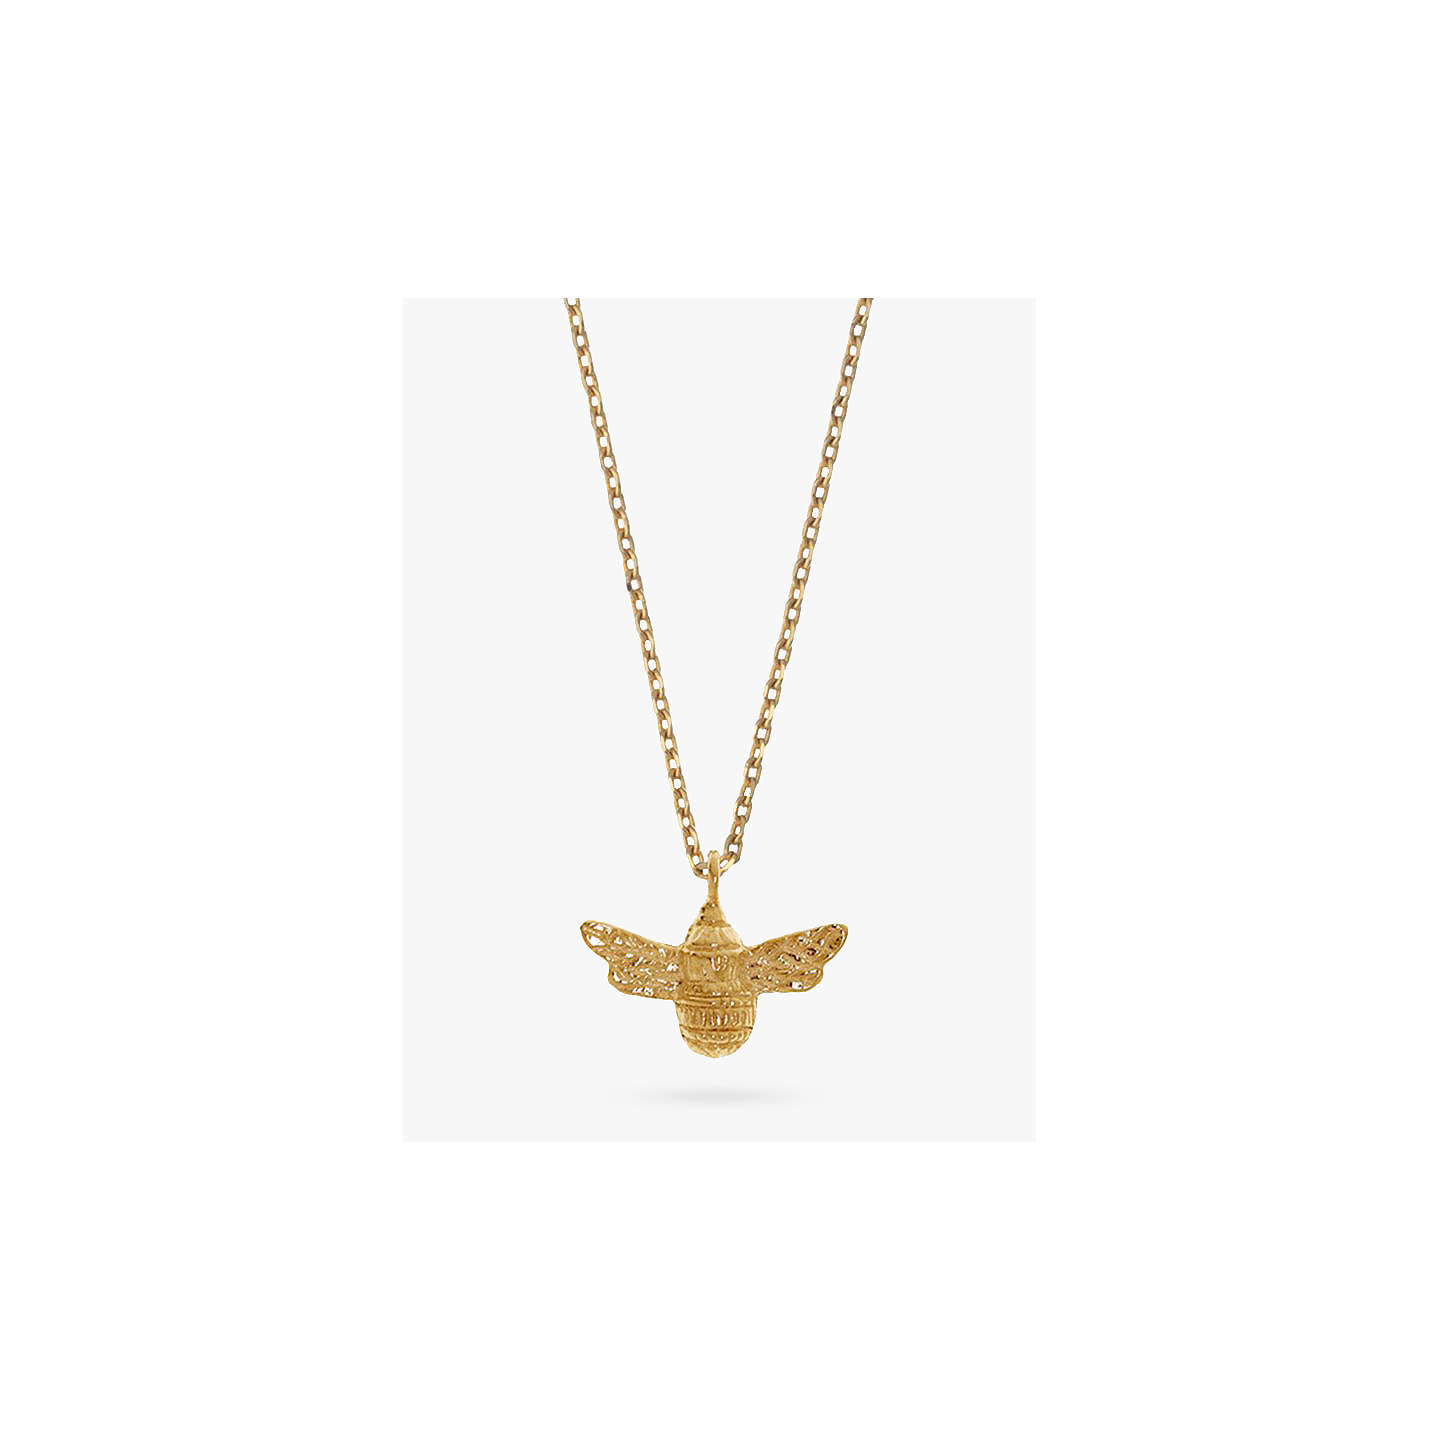 Estella bartlett bee pendant necklace gold at john lewis buyestella bartlett bee pendant necklace gold online at johnlewis aloadofball Images